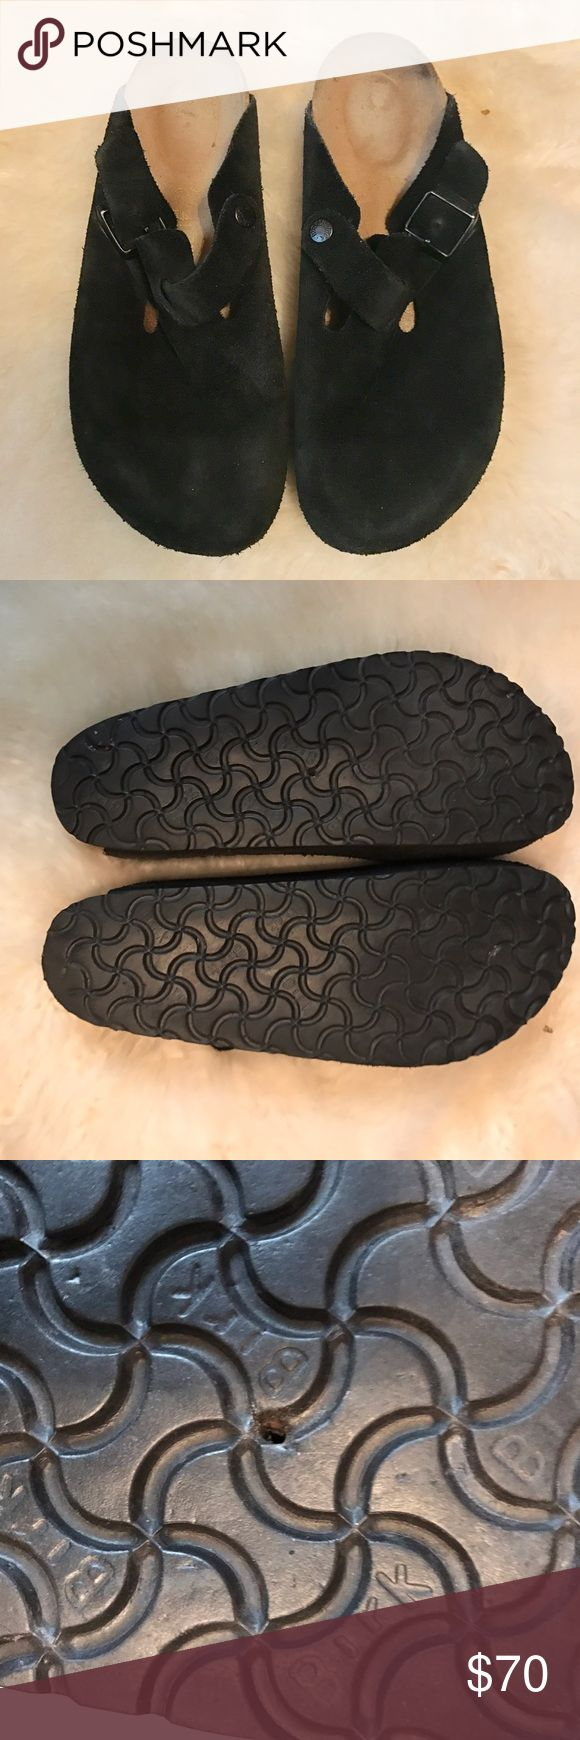 Birkenstock Boston Black Suede Clogs Sz 41 Classic Birkenstock Boston clogs in black suede, comfy as you expect Birkenstocks to be.  Barely worn, minimal signs of wear.  A twig poked the sole so there is a hole where it was but it doesn't go all the way through the plastic.  Make an offer! Birkenstock Shoes Mules & Clogs